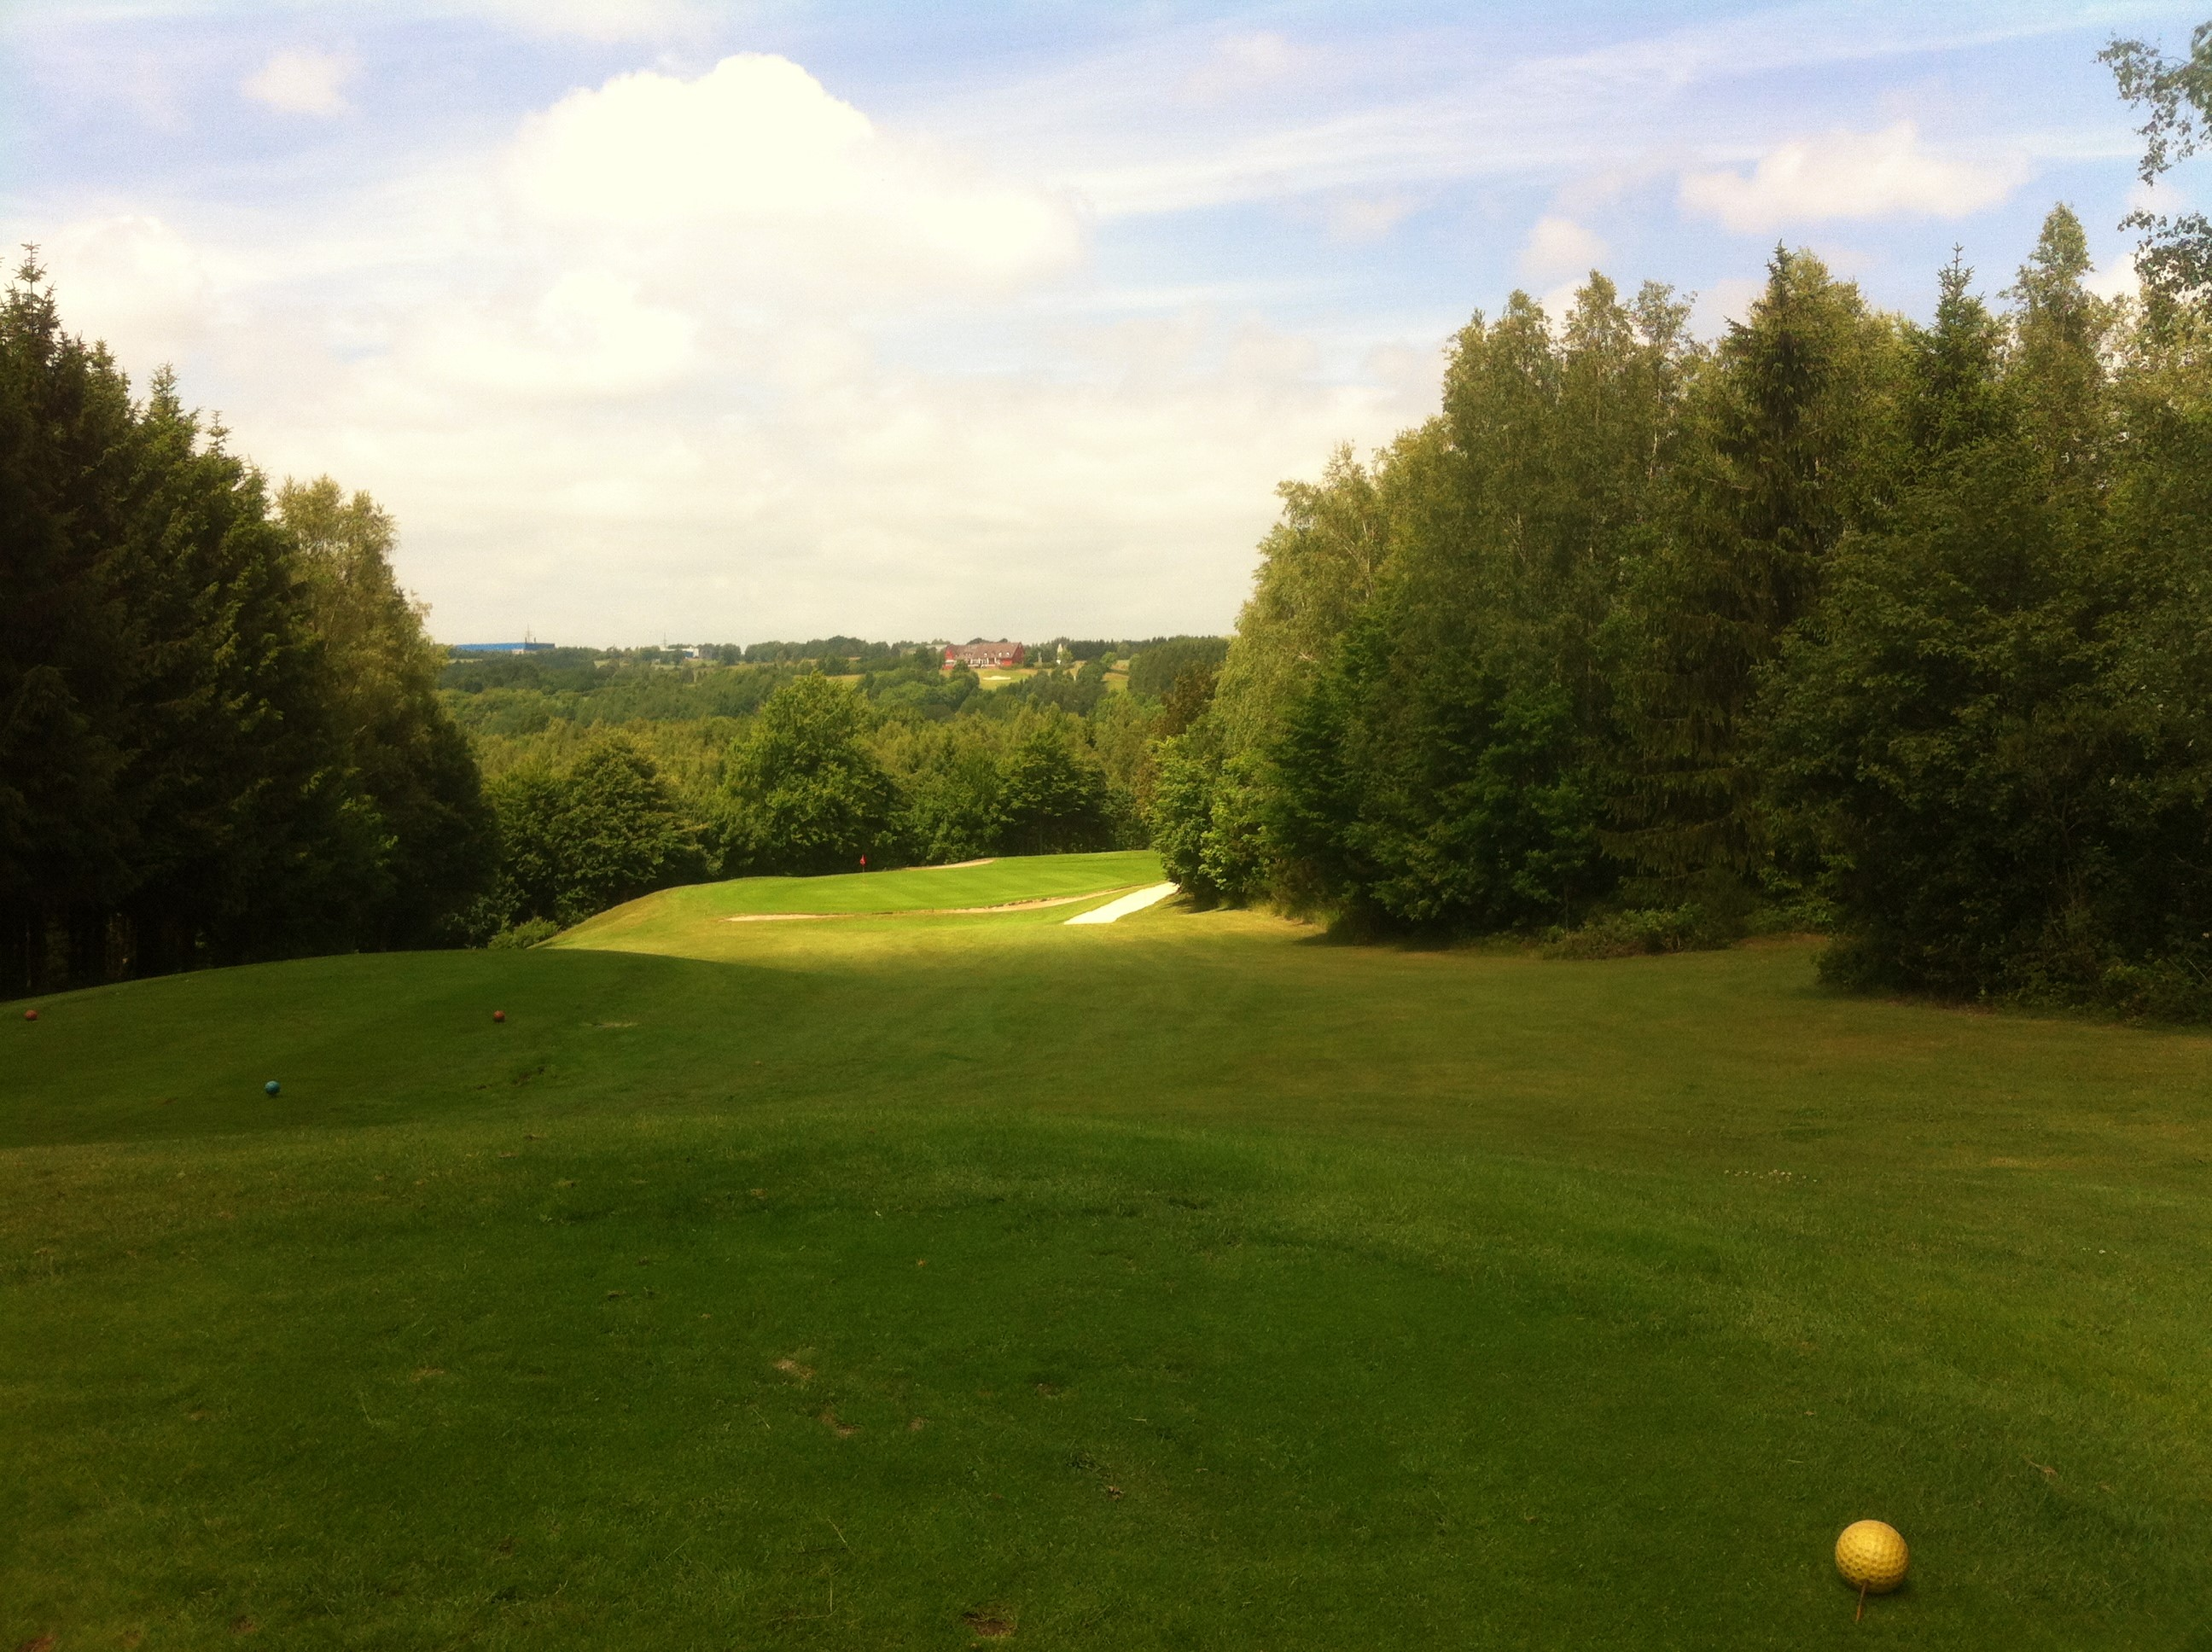 Golf de Clervaux,Luxemburg